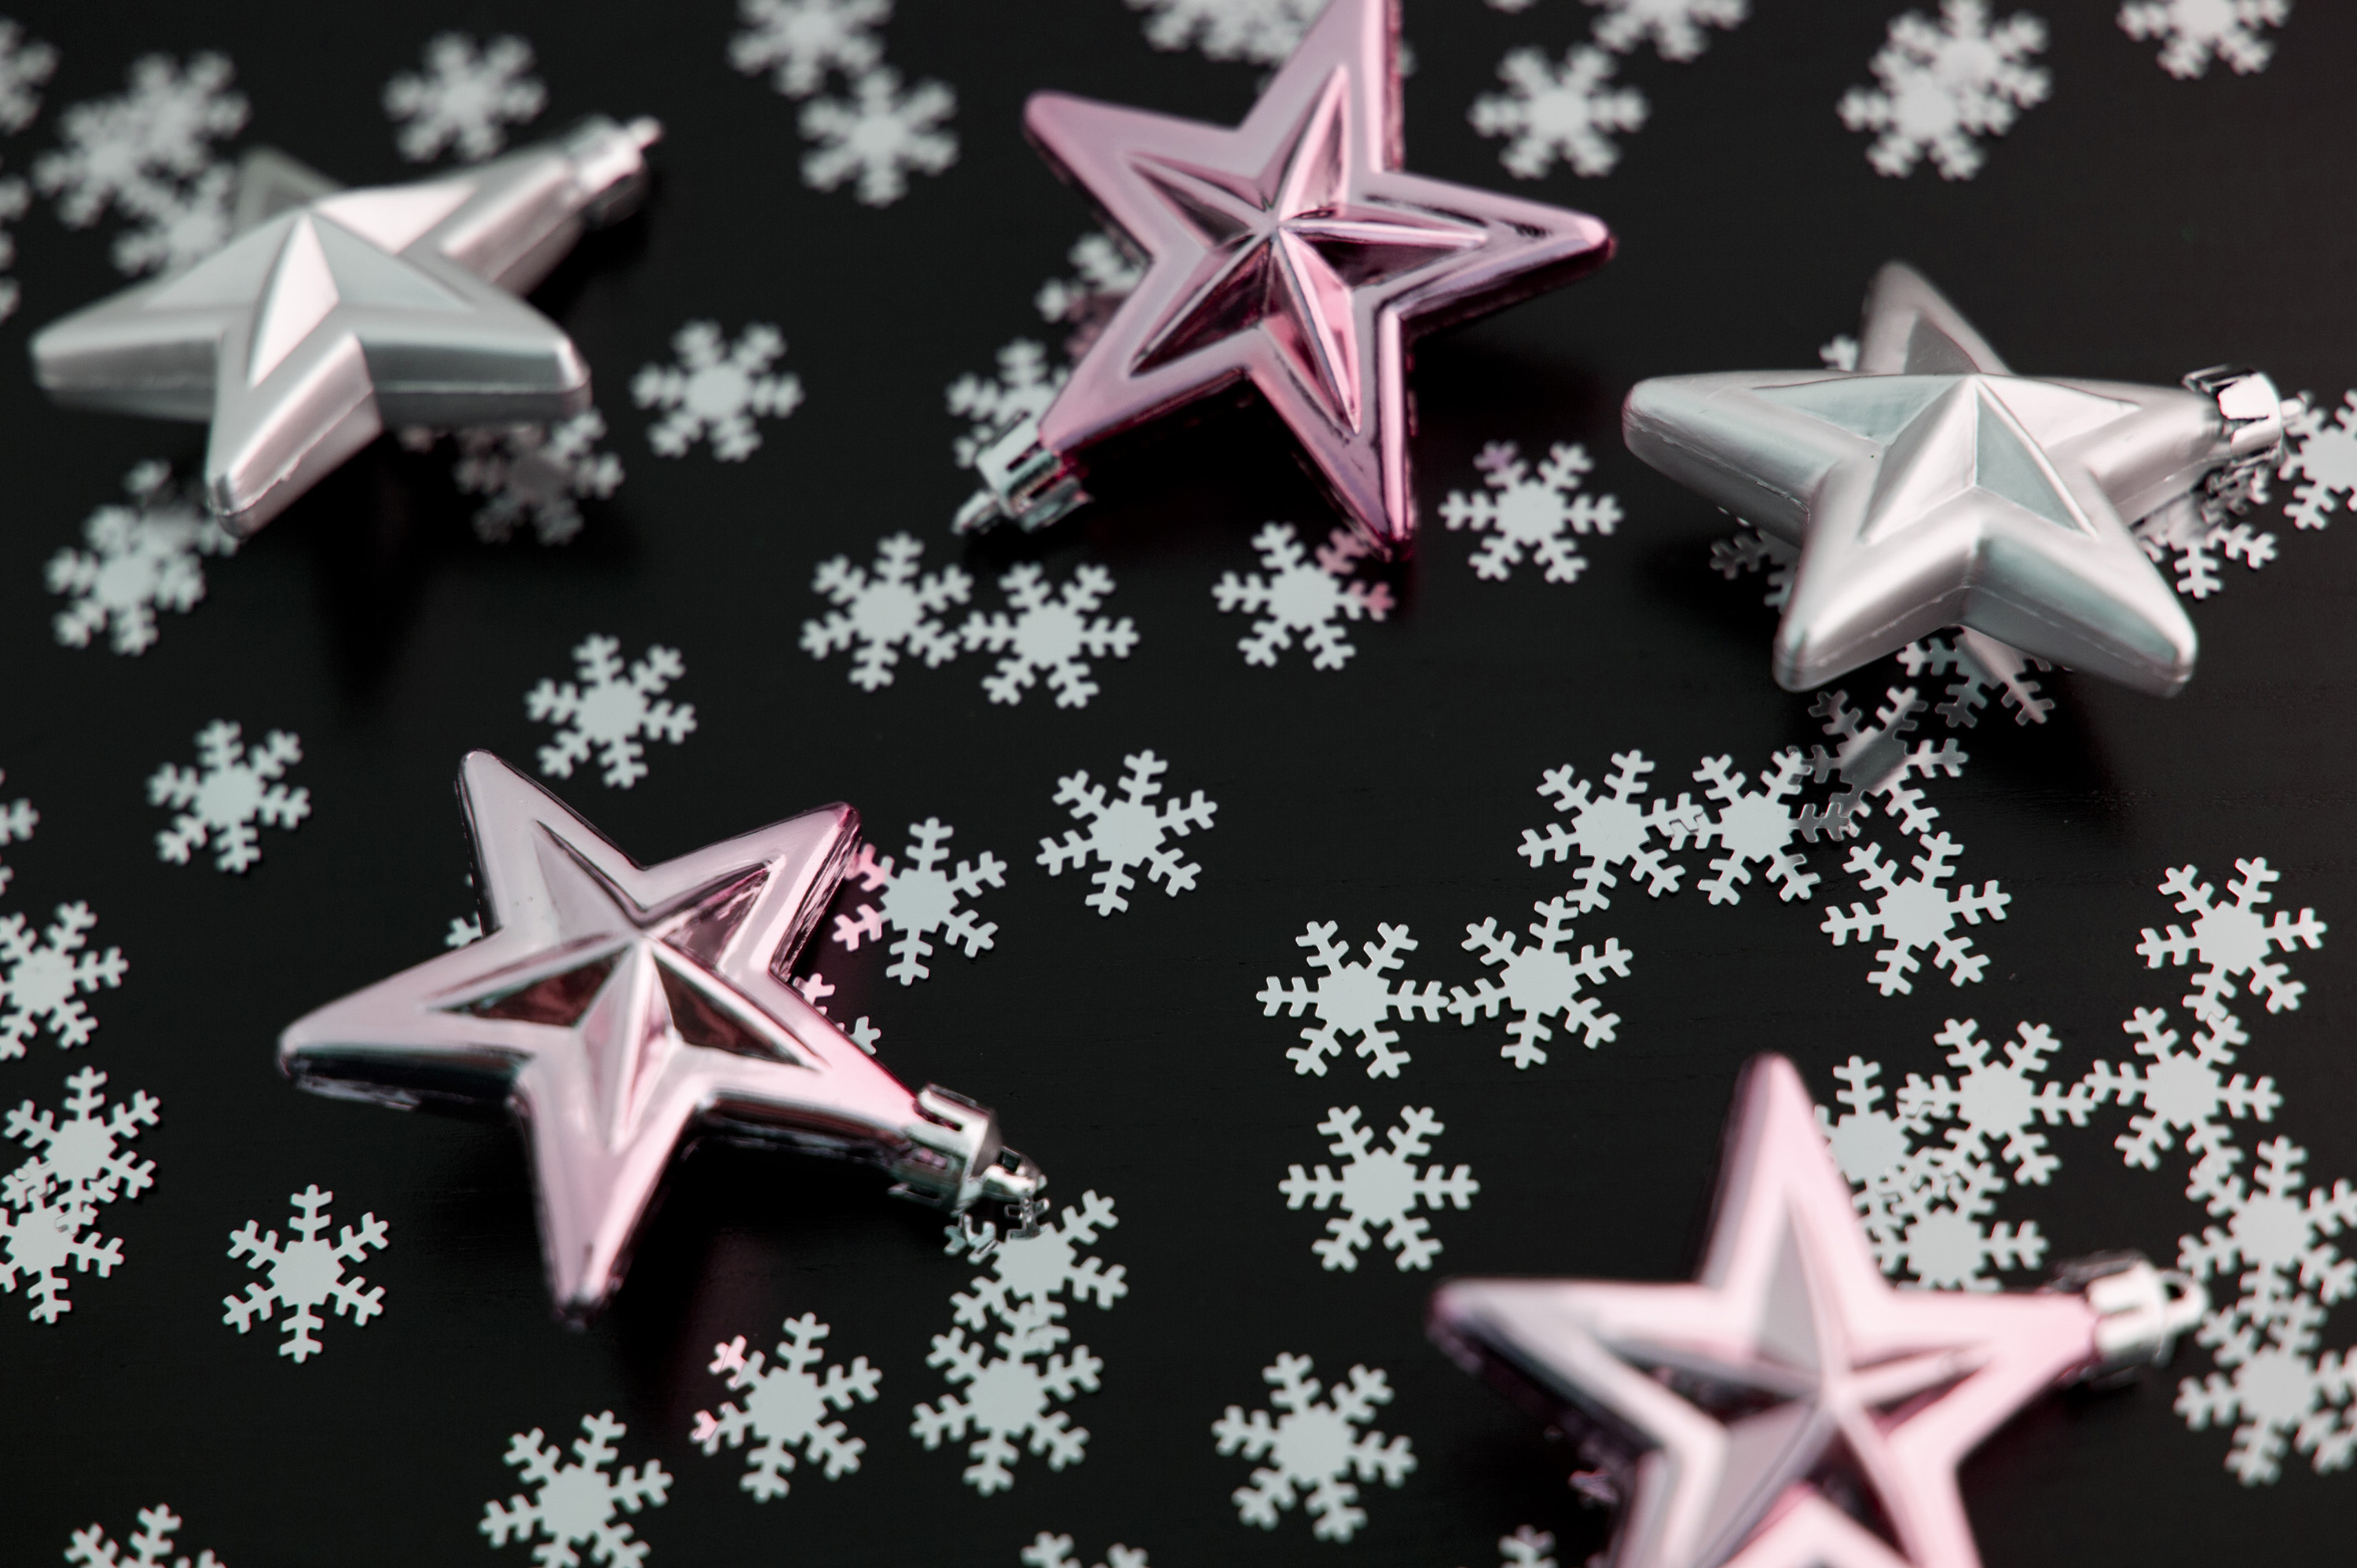 Pink stars and snowflakes randomly scattered across black for your Christmas background